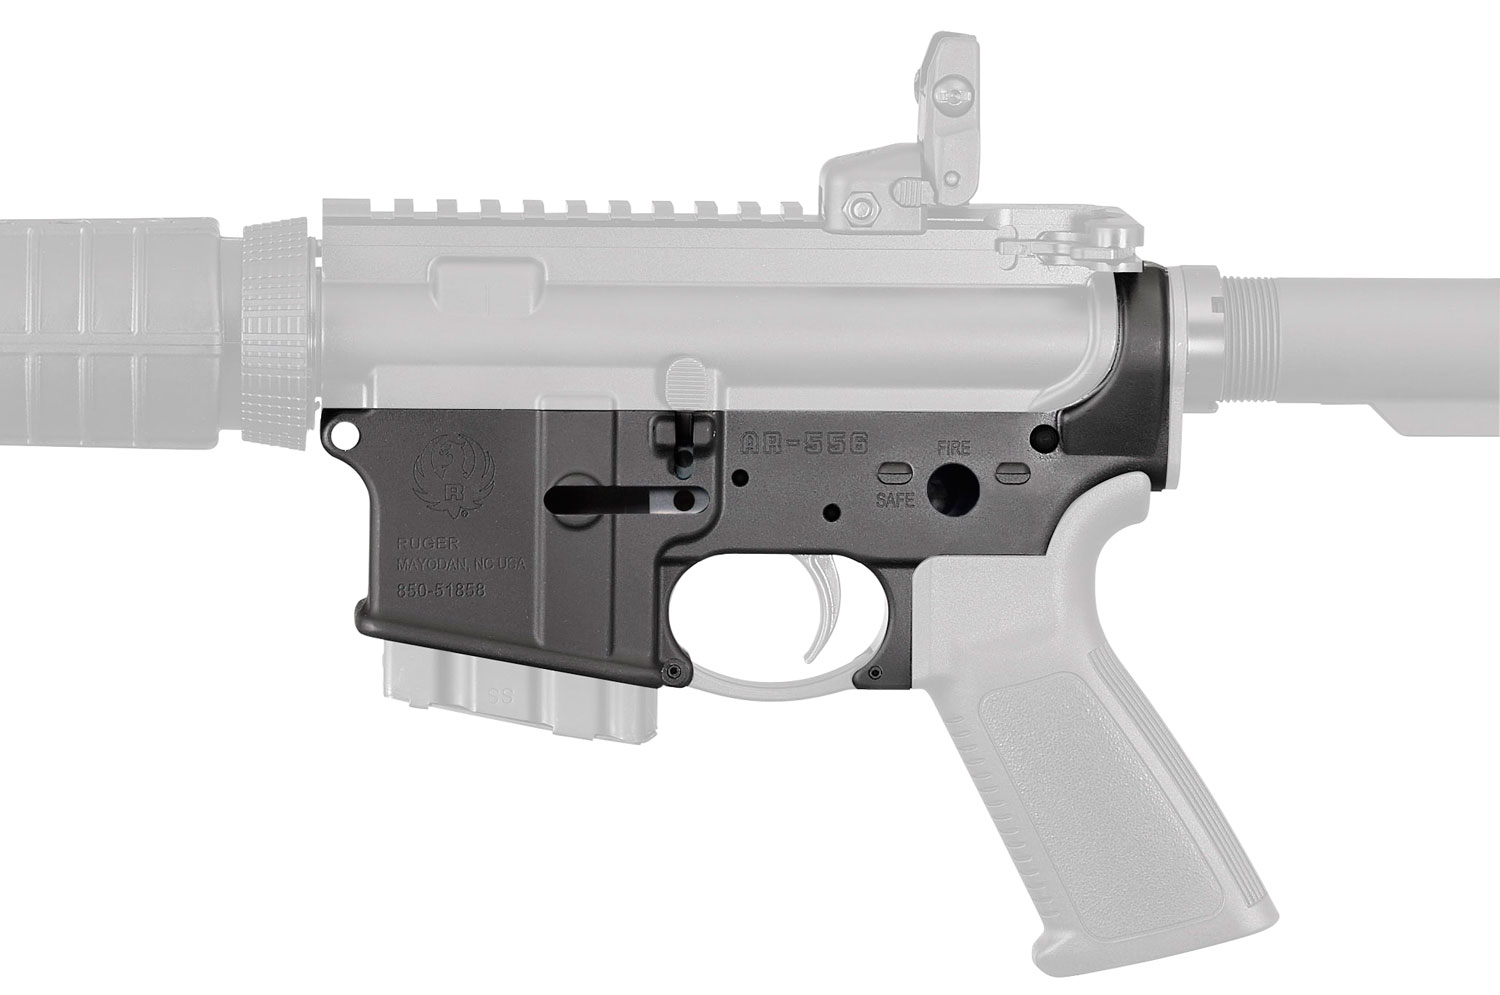 RUGER 8506 AR15 STRIPPED LOWER RECEIVER